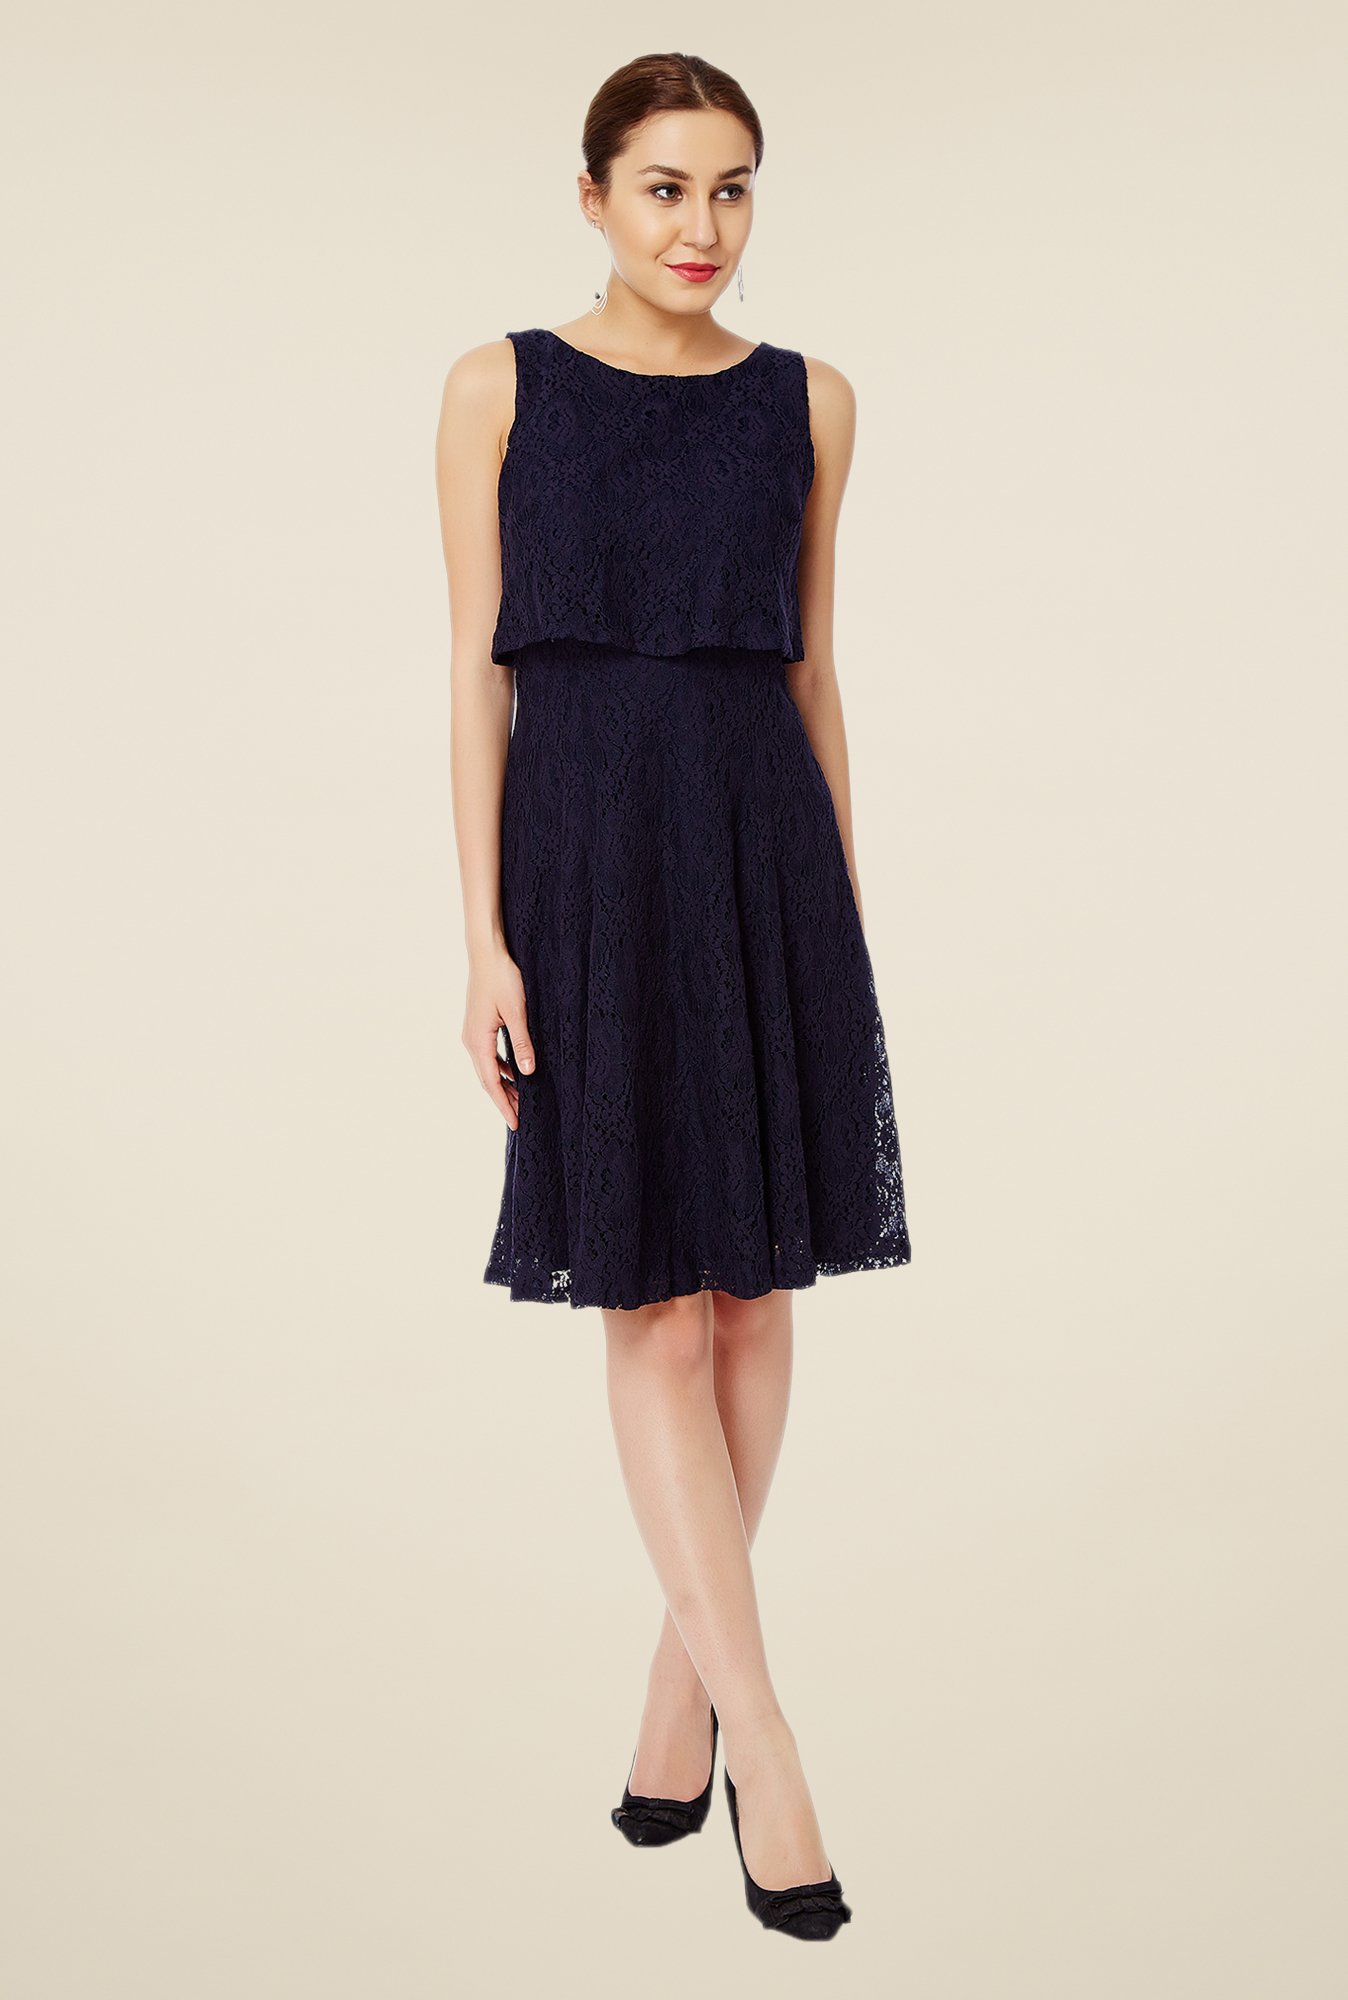 Avirate Navy Lace Dress